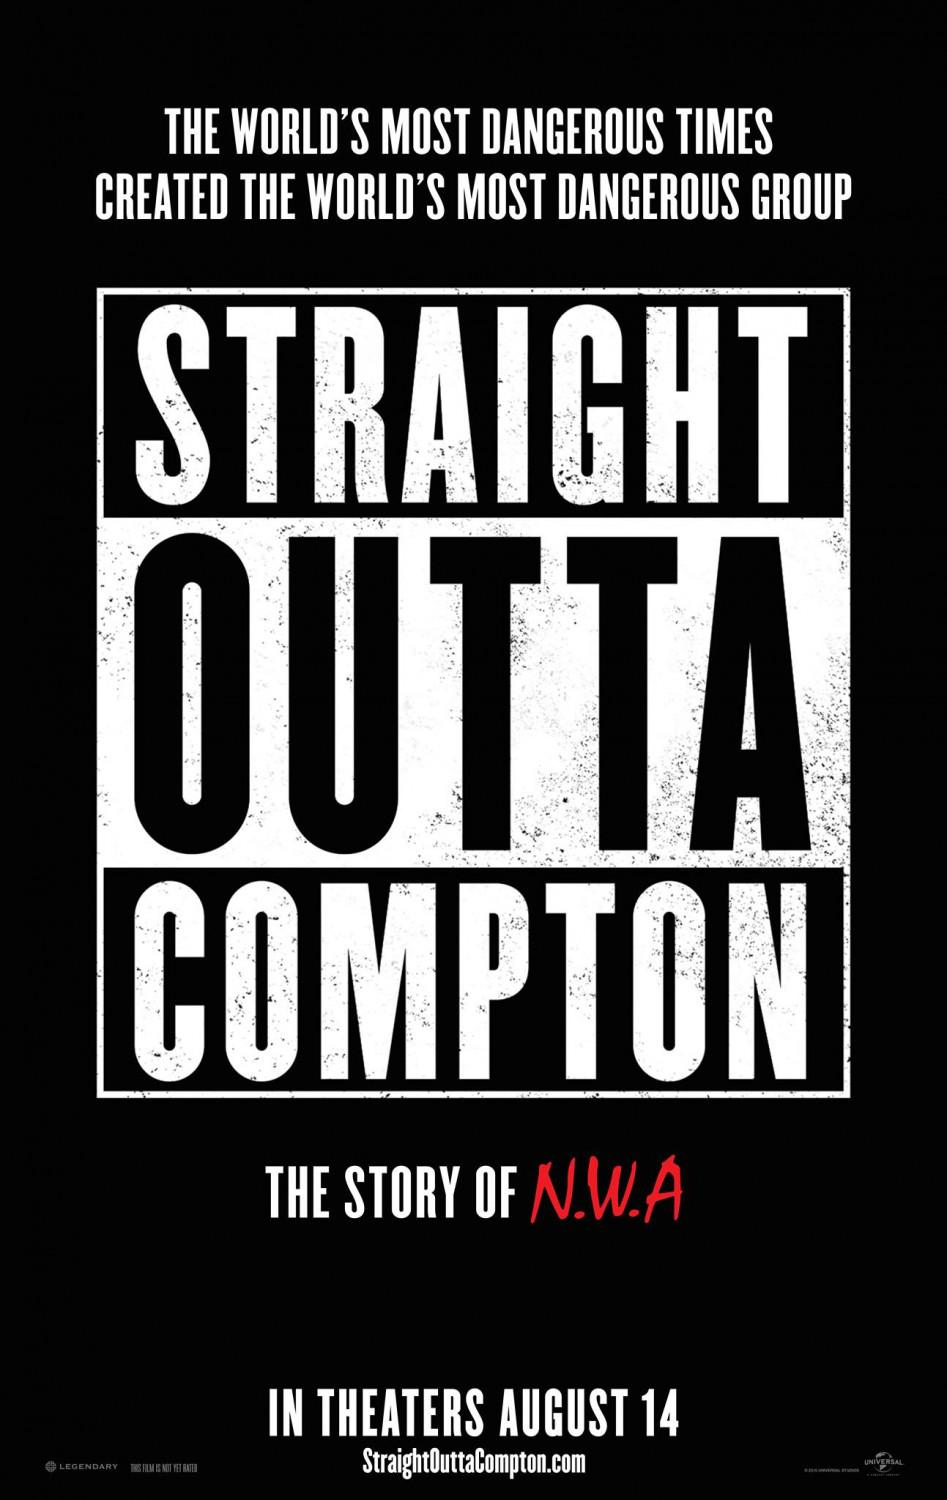 Straight outta Compton - film music poster - the world's most dangerous times created the world's most dangerous group